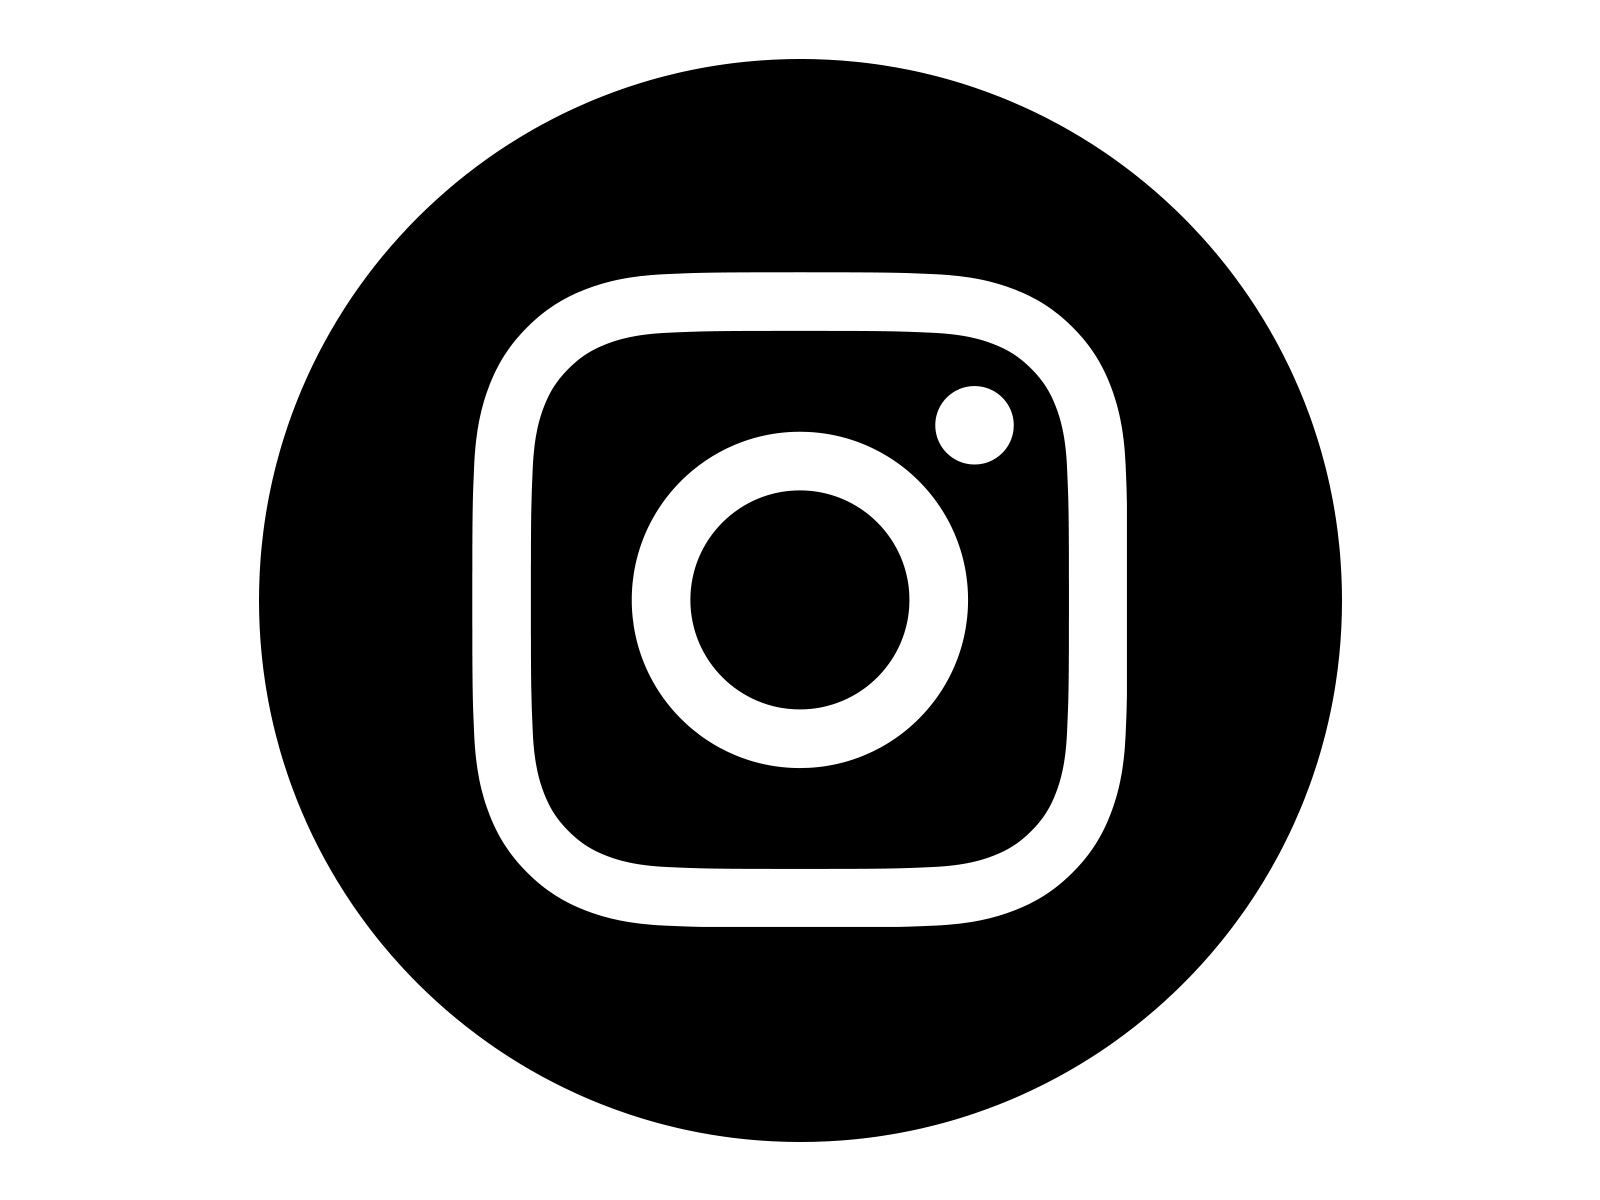 Instagram Black Logo Png - Instagram Icon Black And White Png #88047 - Free Icons Library